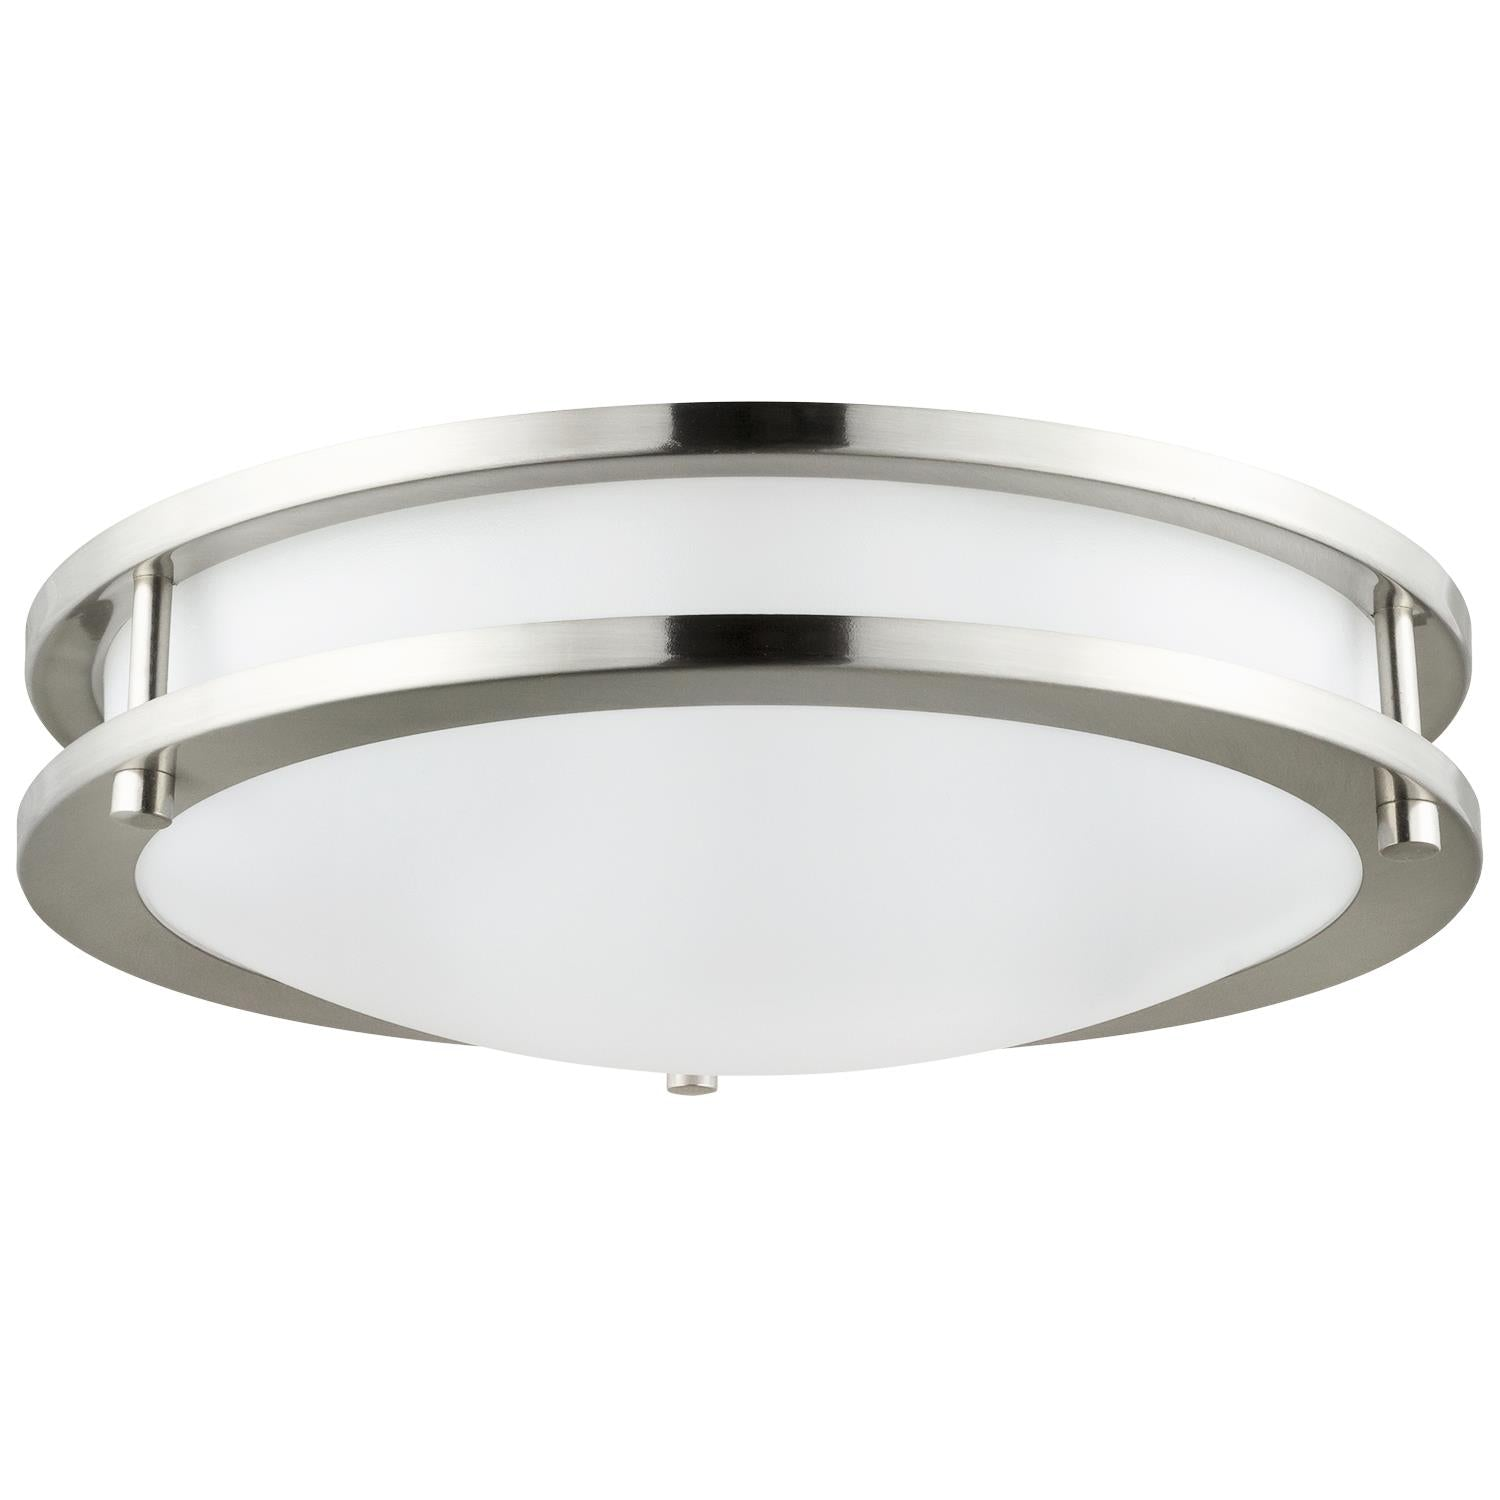 SUNLITE 21w Brushed Nickel Ceiling Light Fixture in Cool White 4000K